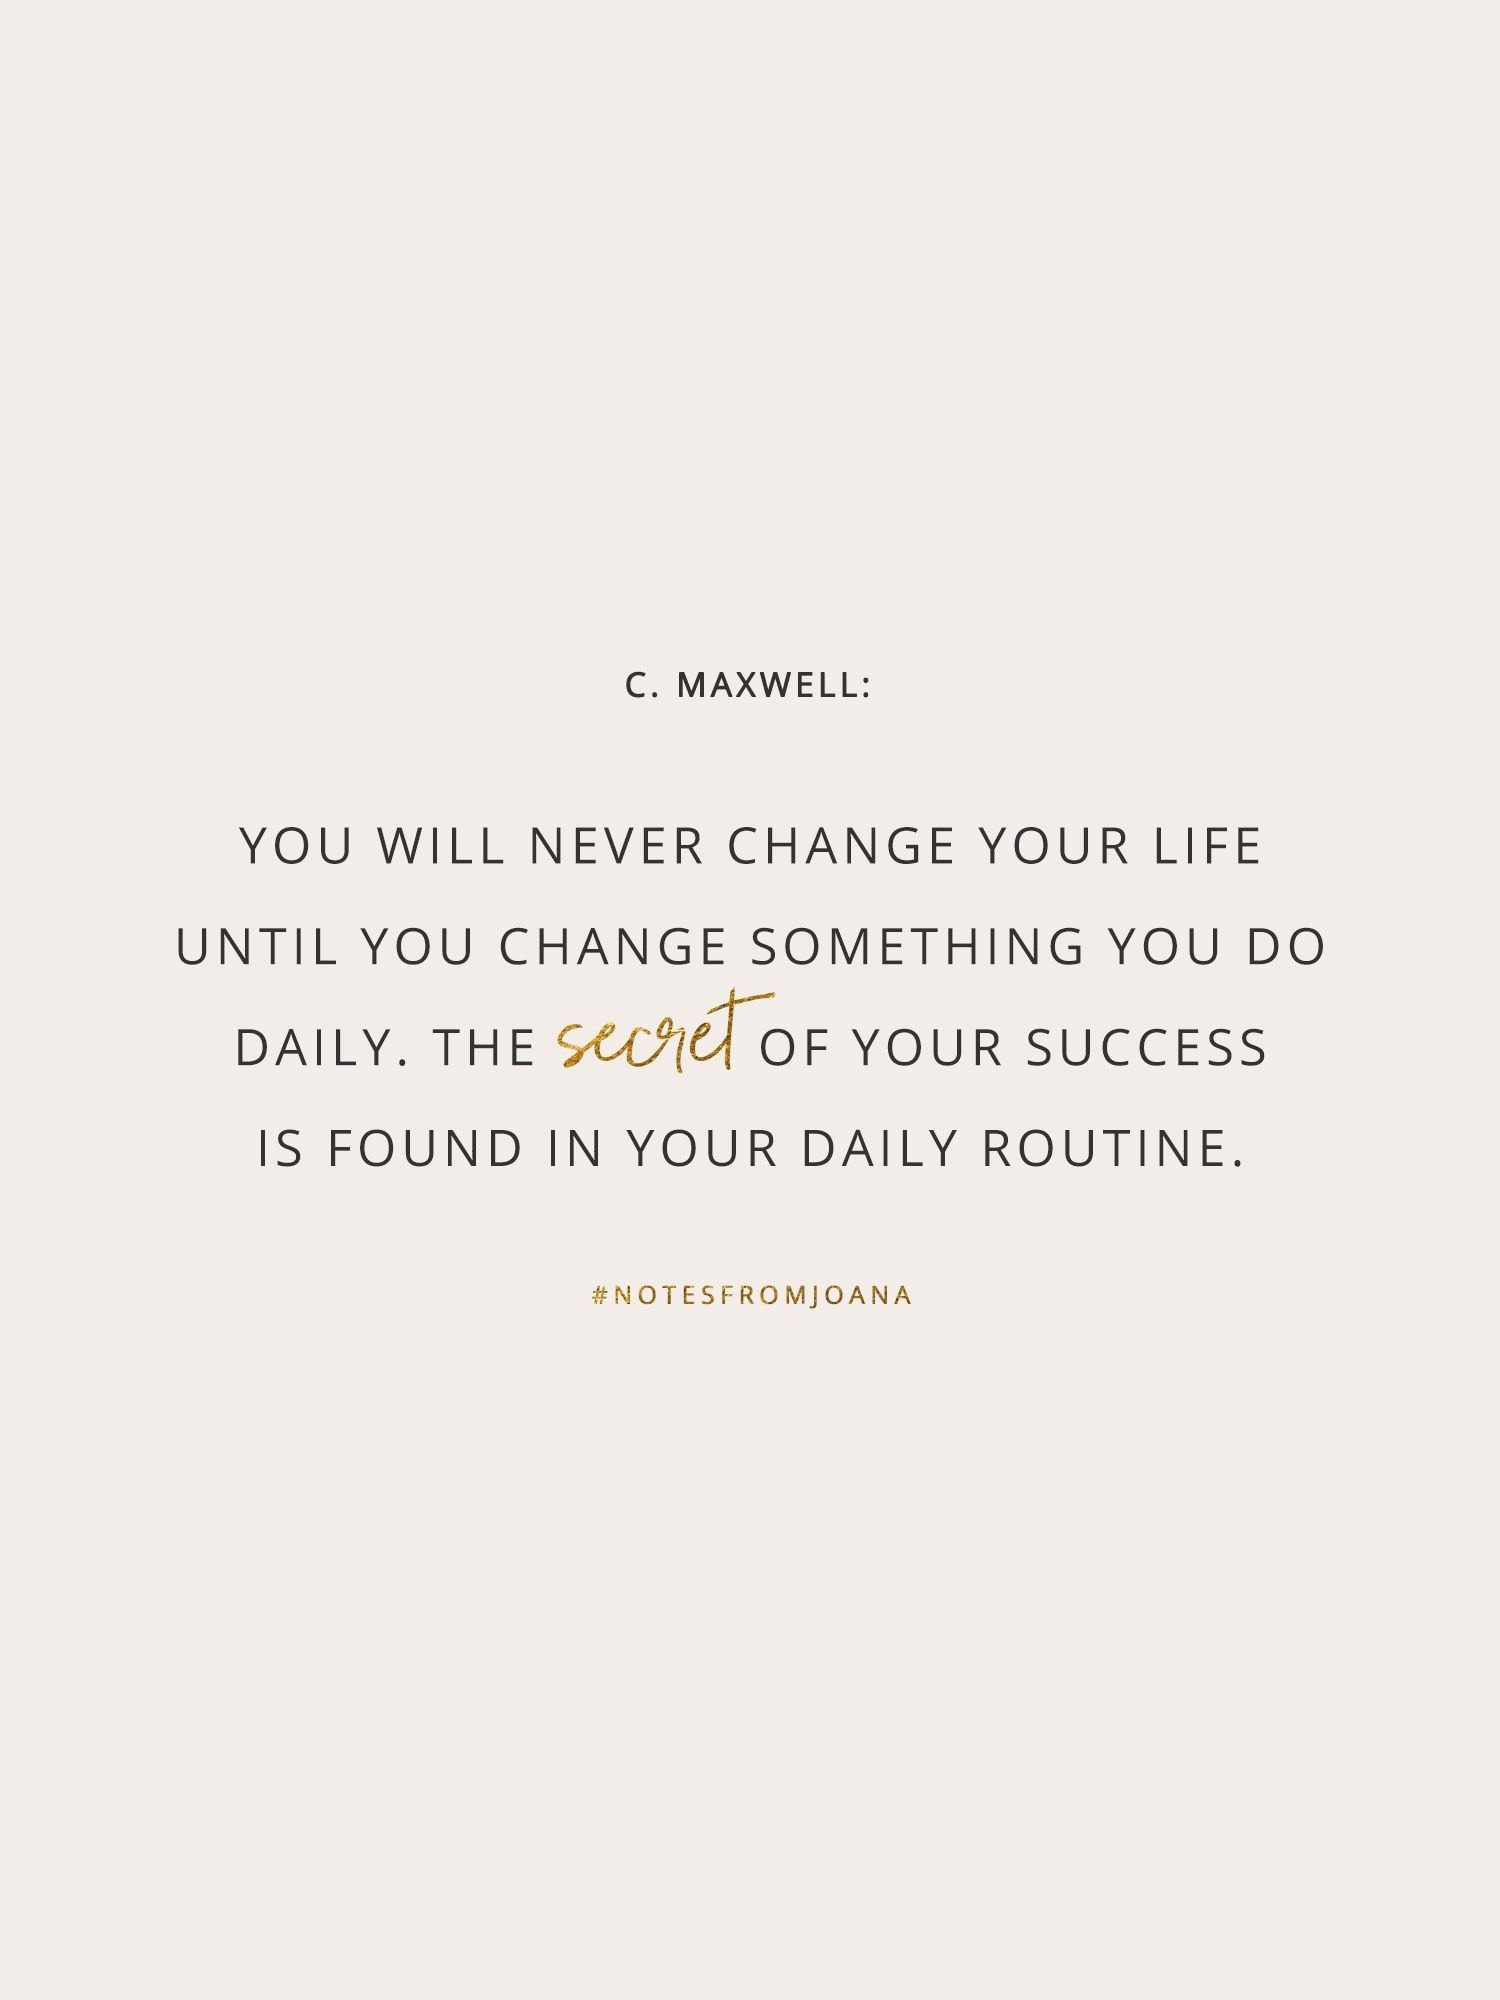 20 Inspirational Quotes To Help You Become Your Best Self You Will Never Change Your Life Until You Cha Best Self Quotes Doing Your Best Quotes Routine Quotes